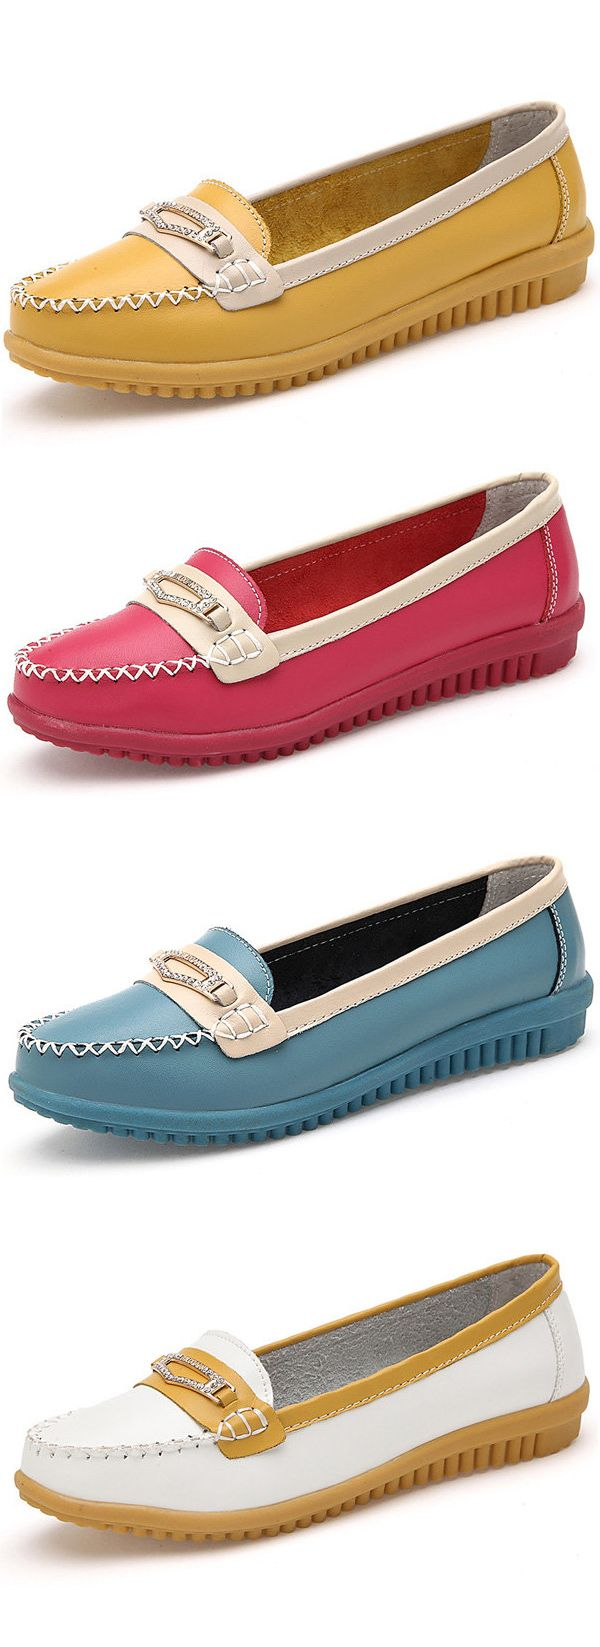 $17.94  Women Casual Leather Shoes, Colors Pointed Toe Flats ,Soft Sole Slip On Leather Loafer Shoes,flats shoes,flats outfit,flats sandals,loafers,loafers outfit,loafers for women